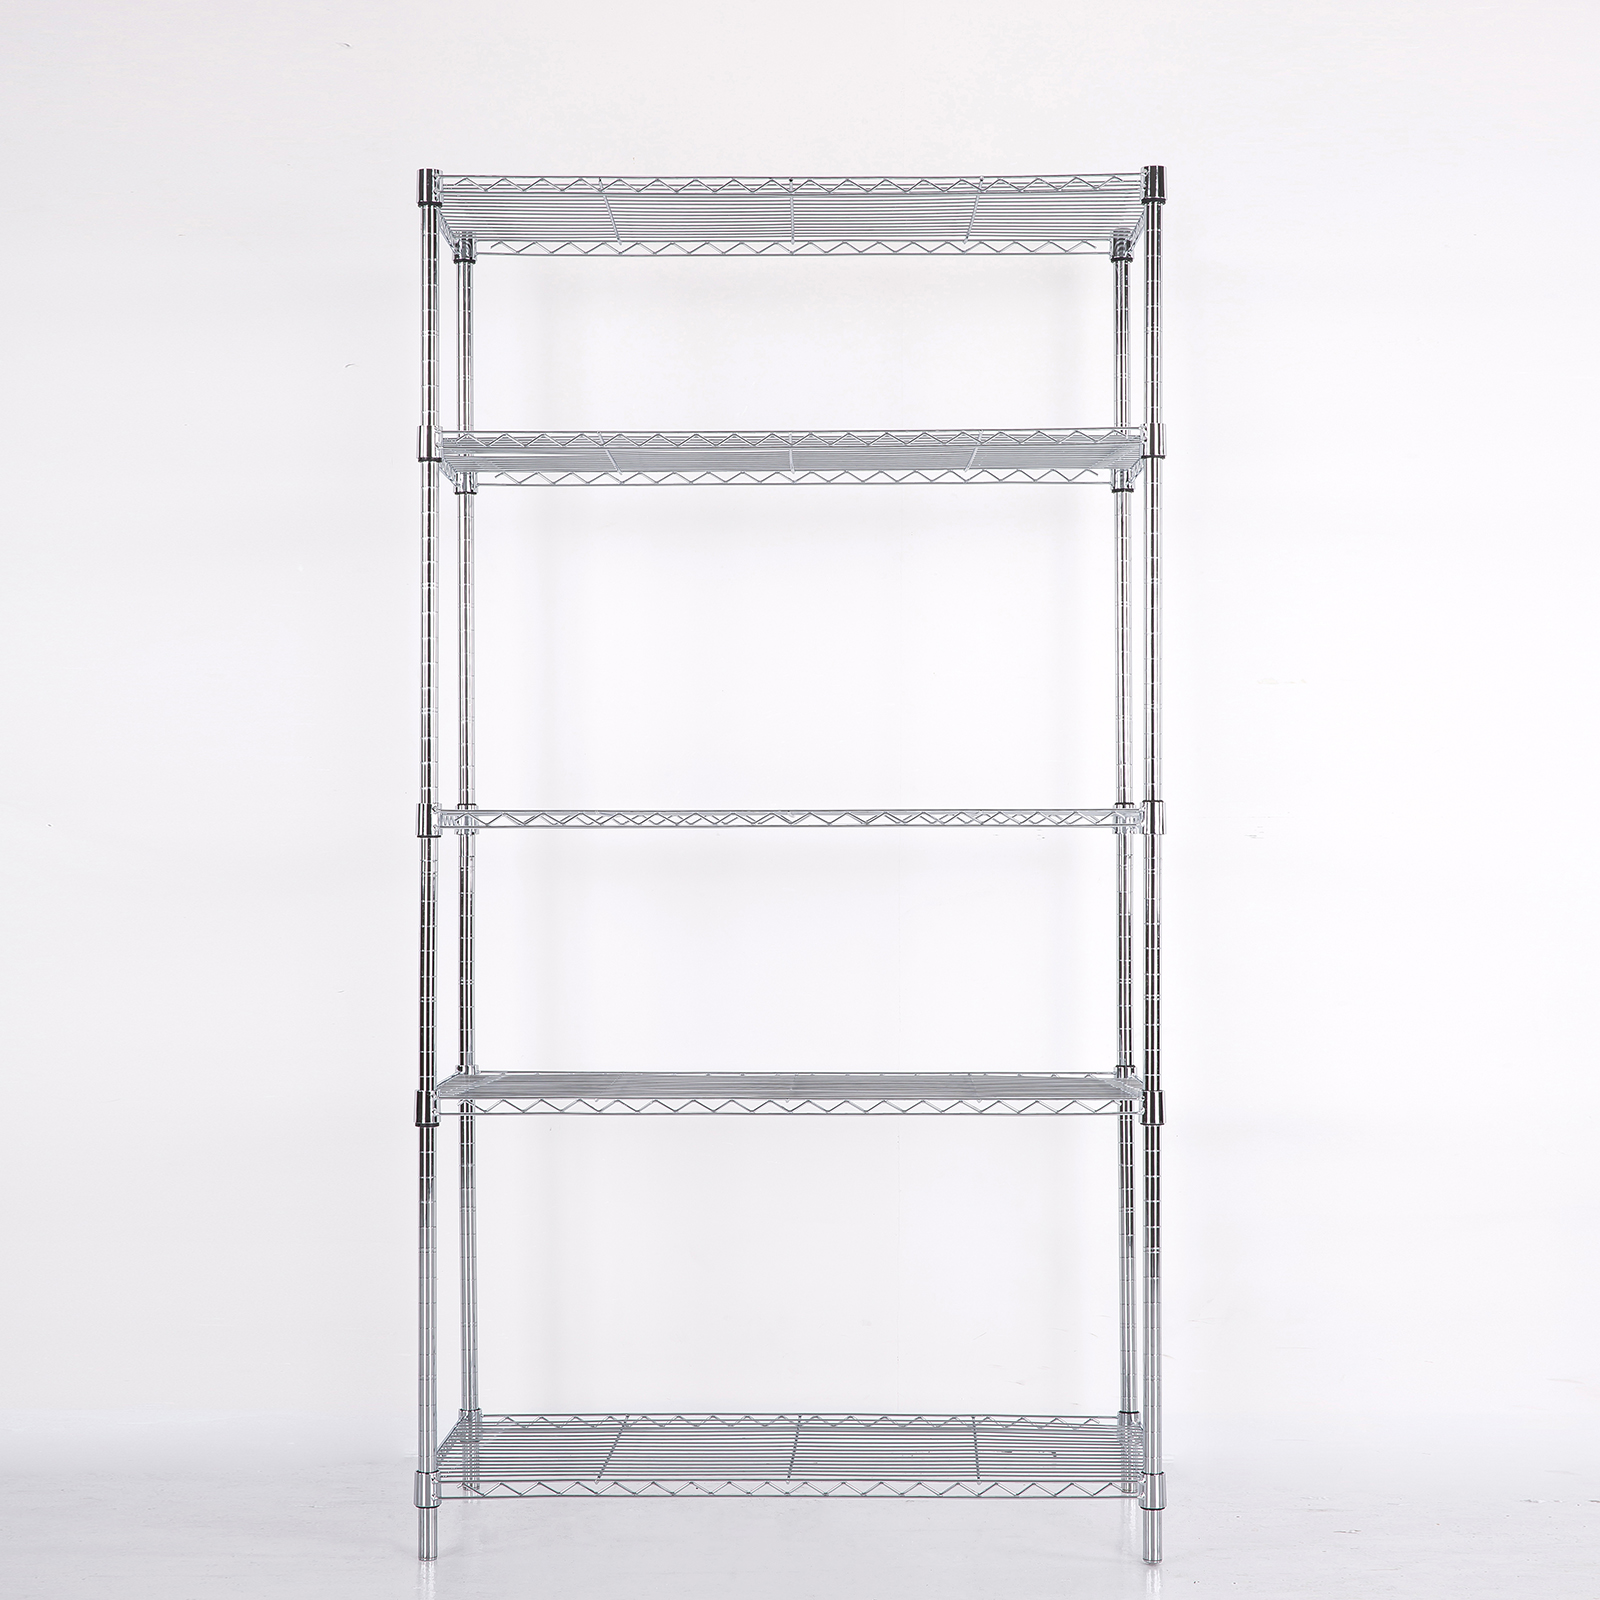 73 x36 x14 wire metal shelving rack 5 tier layer shelf. Black Bedroom Furniture Sets. Home Design Ideas